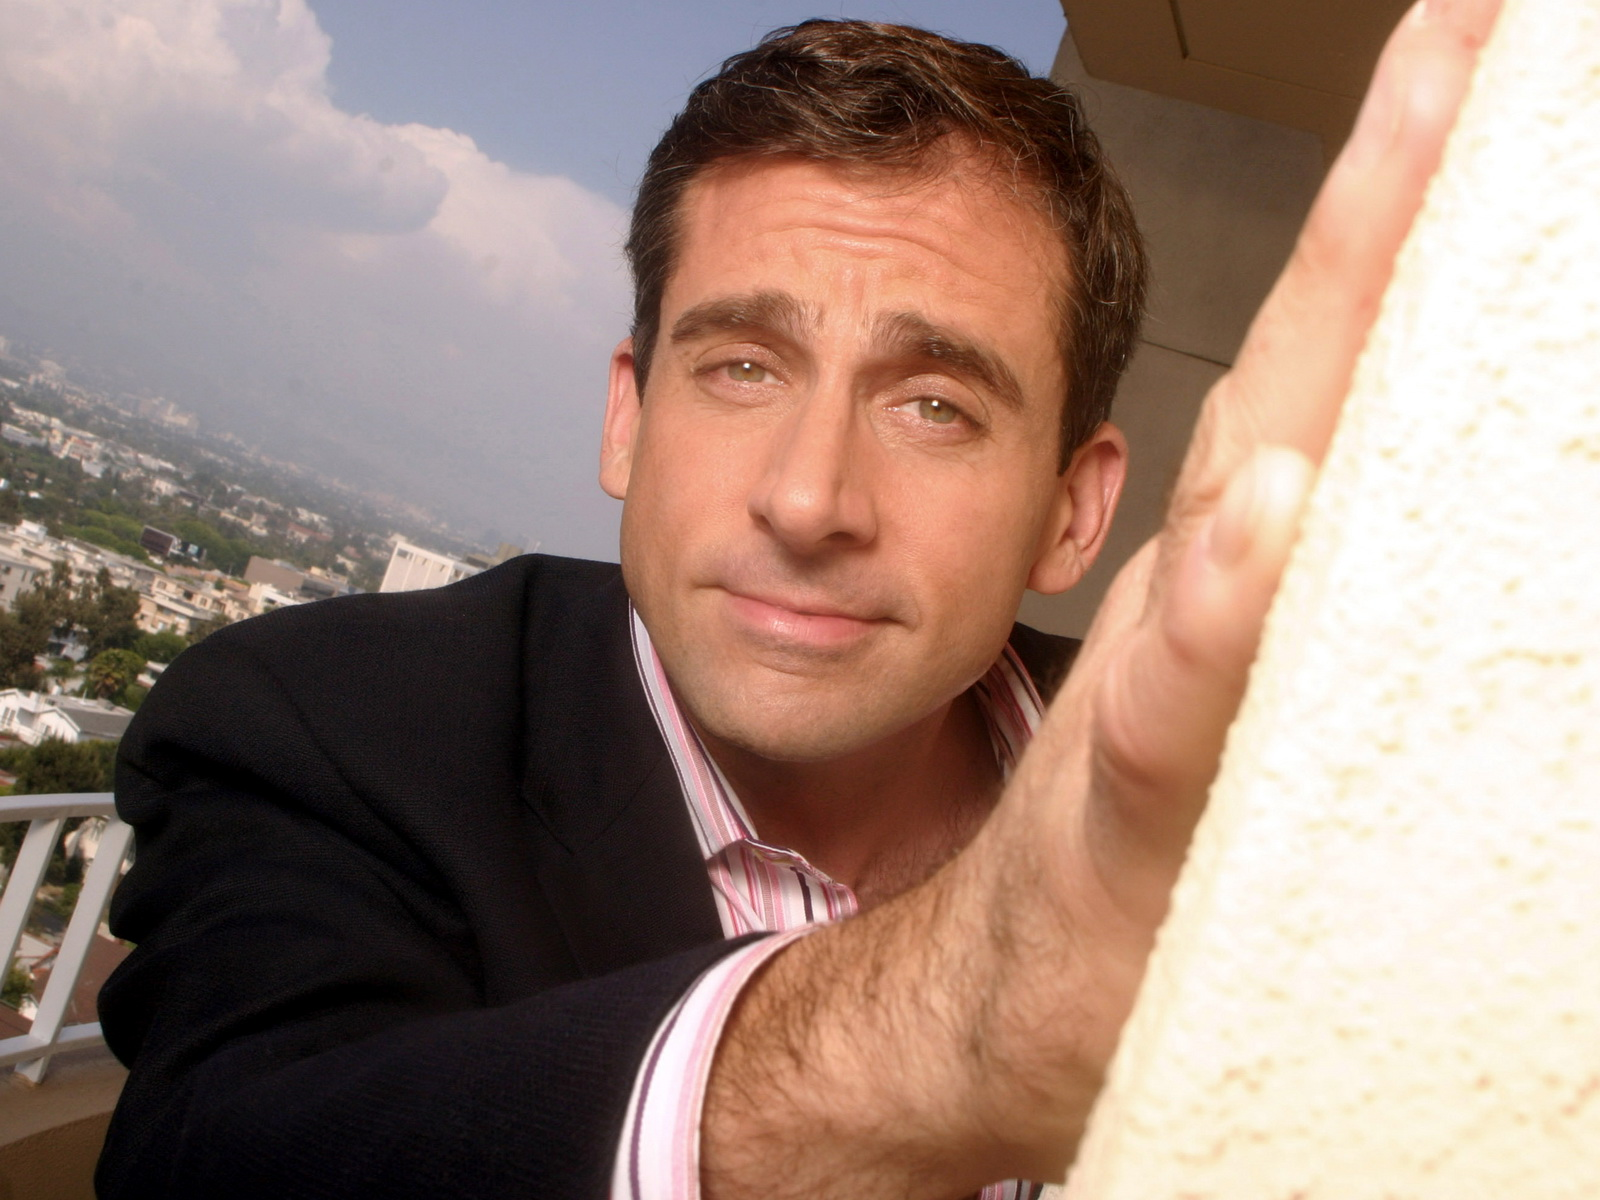 Steve Carell Please STOP AdBlock Browser plugin to view this pic and support our site!